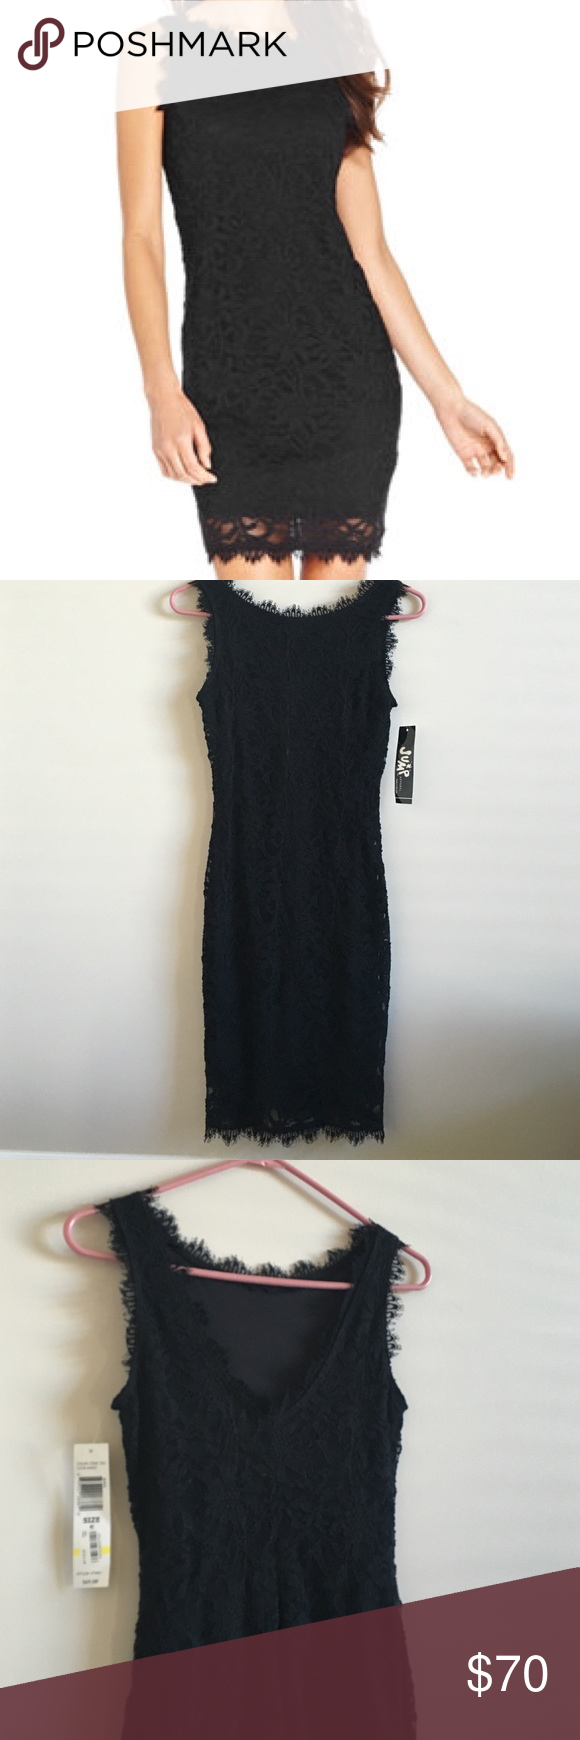 Lace Bodycon Dress V in back, fully lined. Nwt, juniors Small, stretchy enough to fit women's small. Jump Apparel Dresses Mini